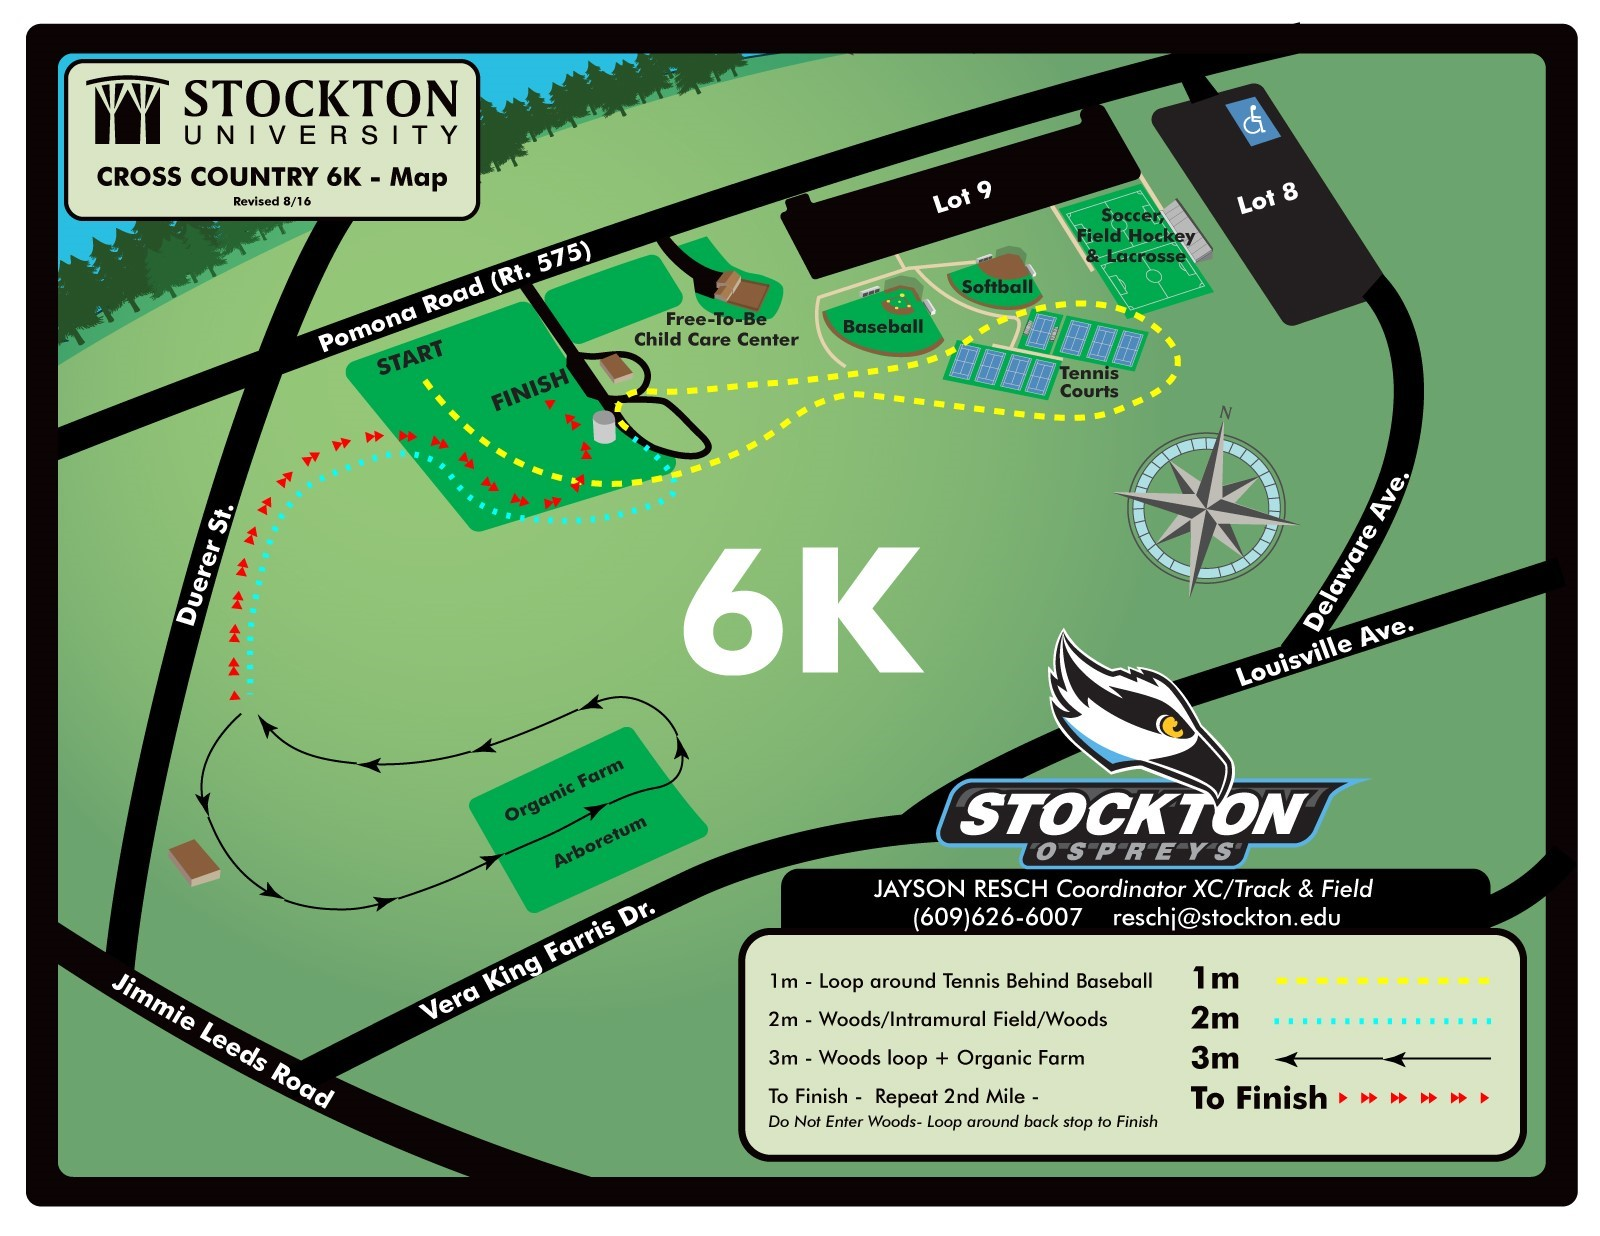 official site of the stockton university ospreys